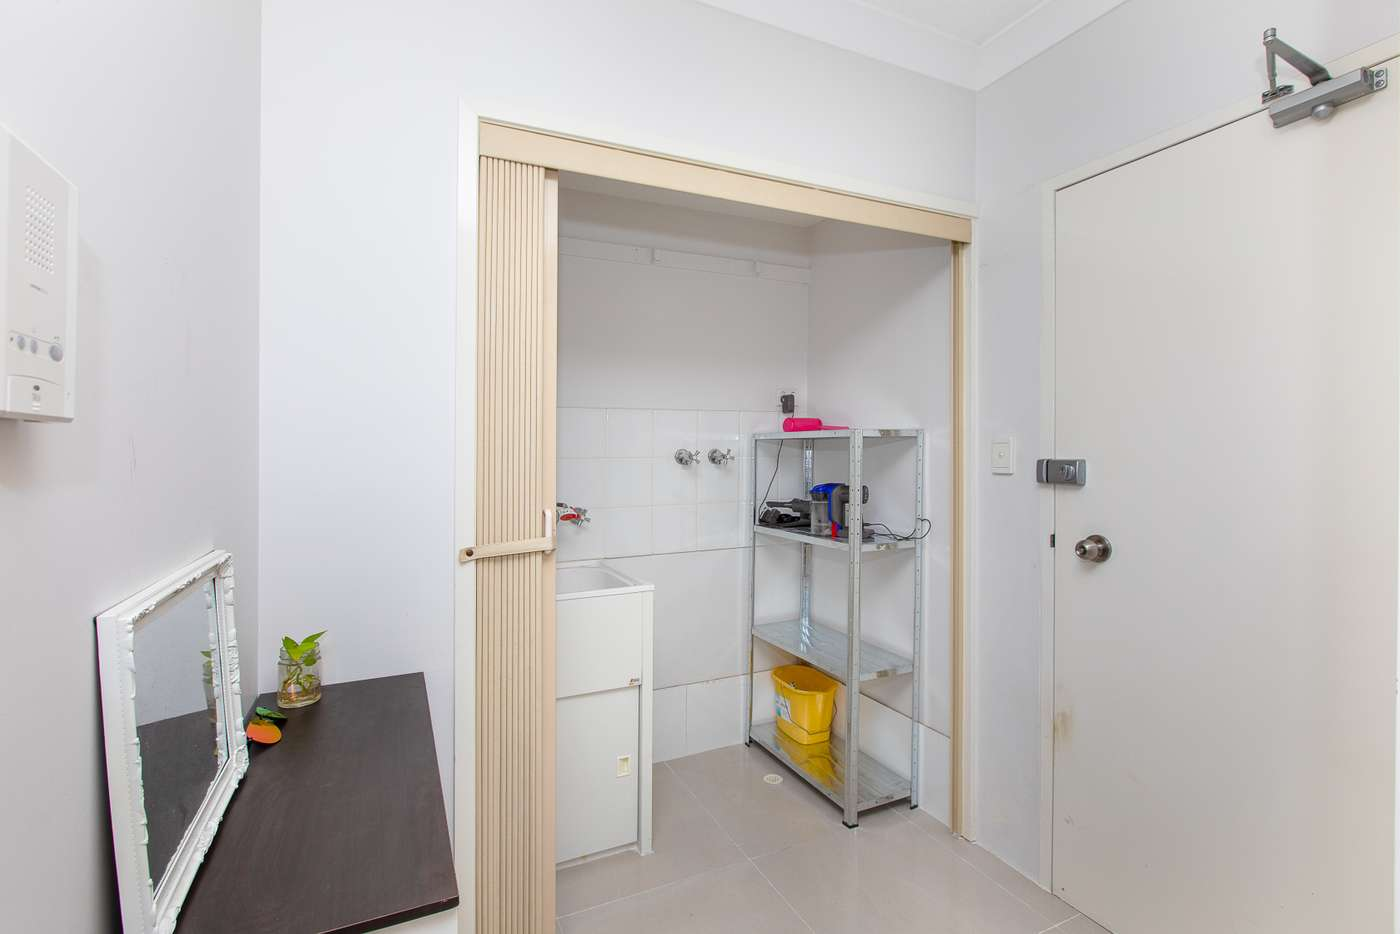 Sixth view of Homely unit listing, 29 Bell St, Kangaroo Point QLD 4169